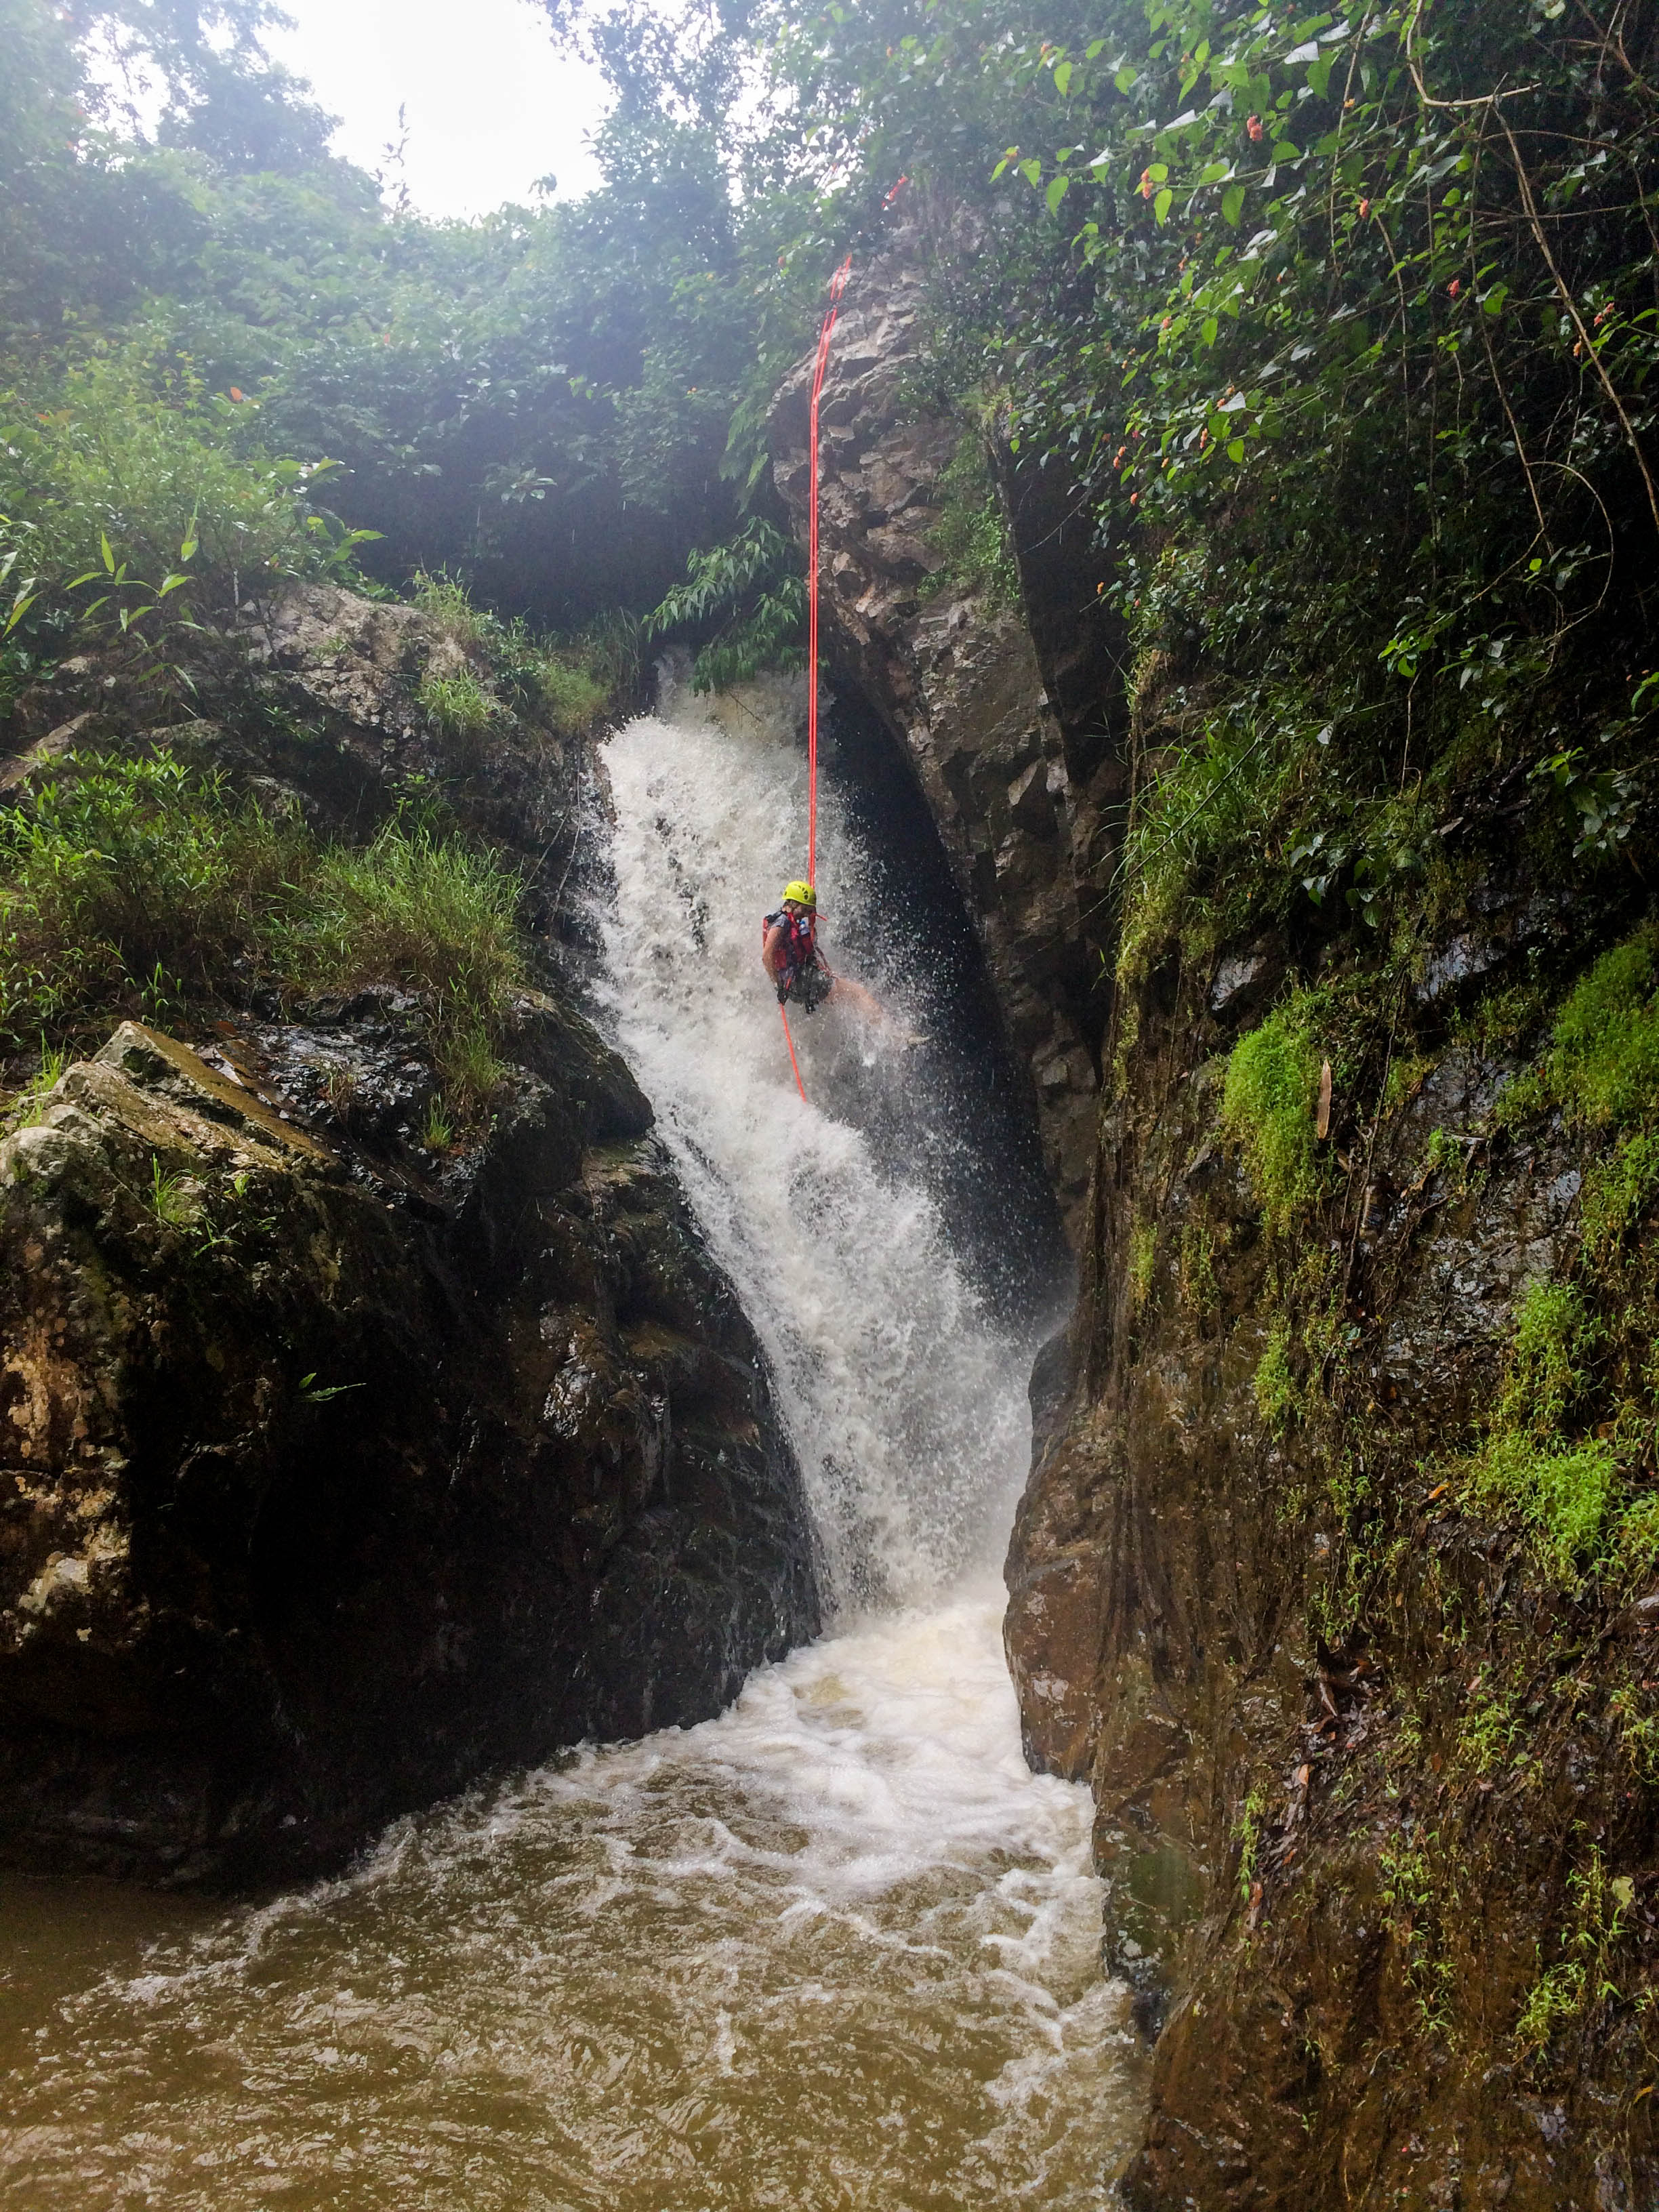 More canyoning